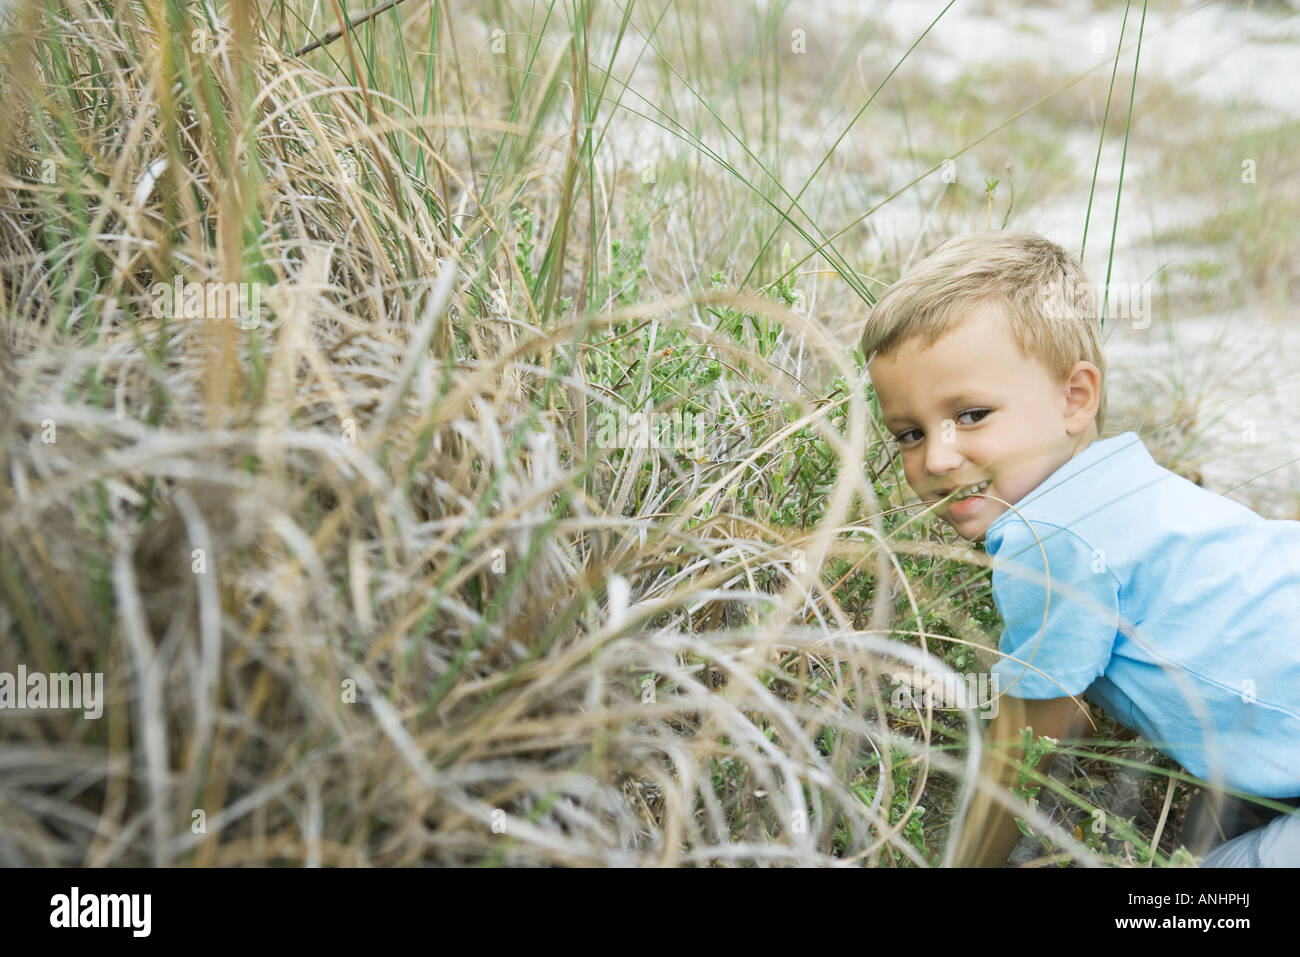 Young boy crouching in tall grass, looking away - Stock Image